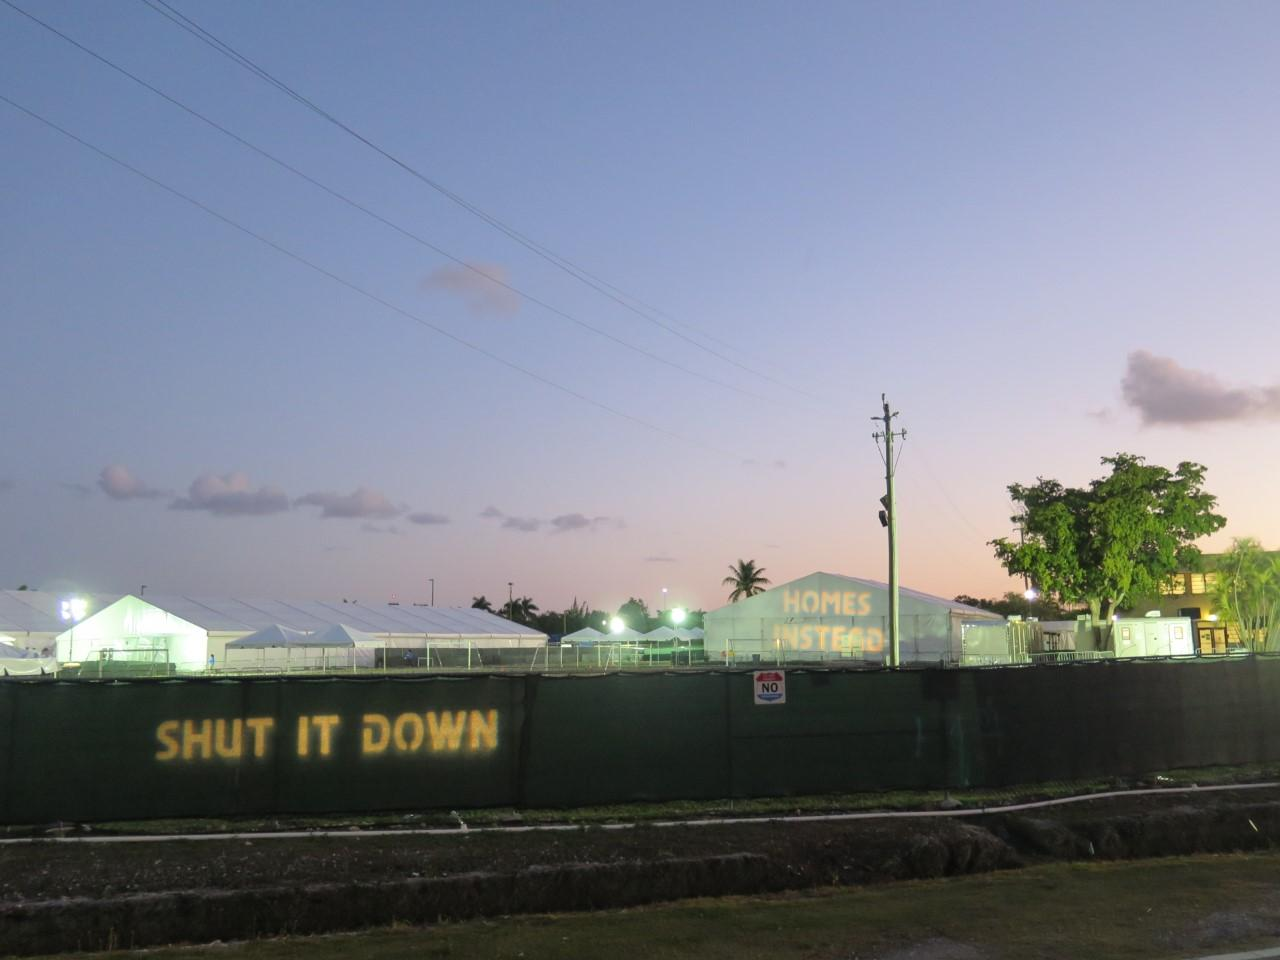 Photo of Homestead Detention Center with the words